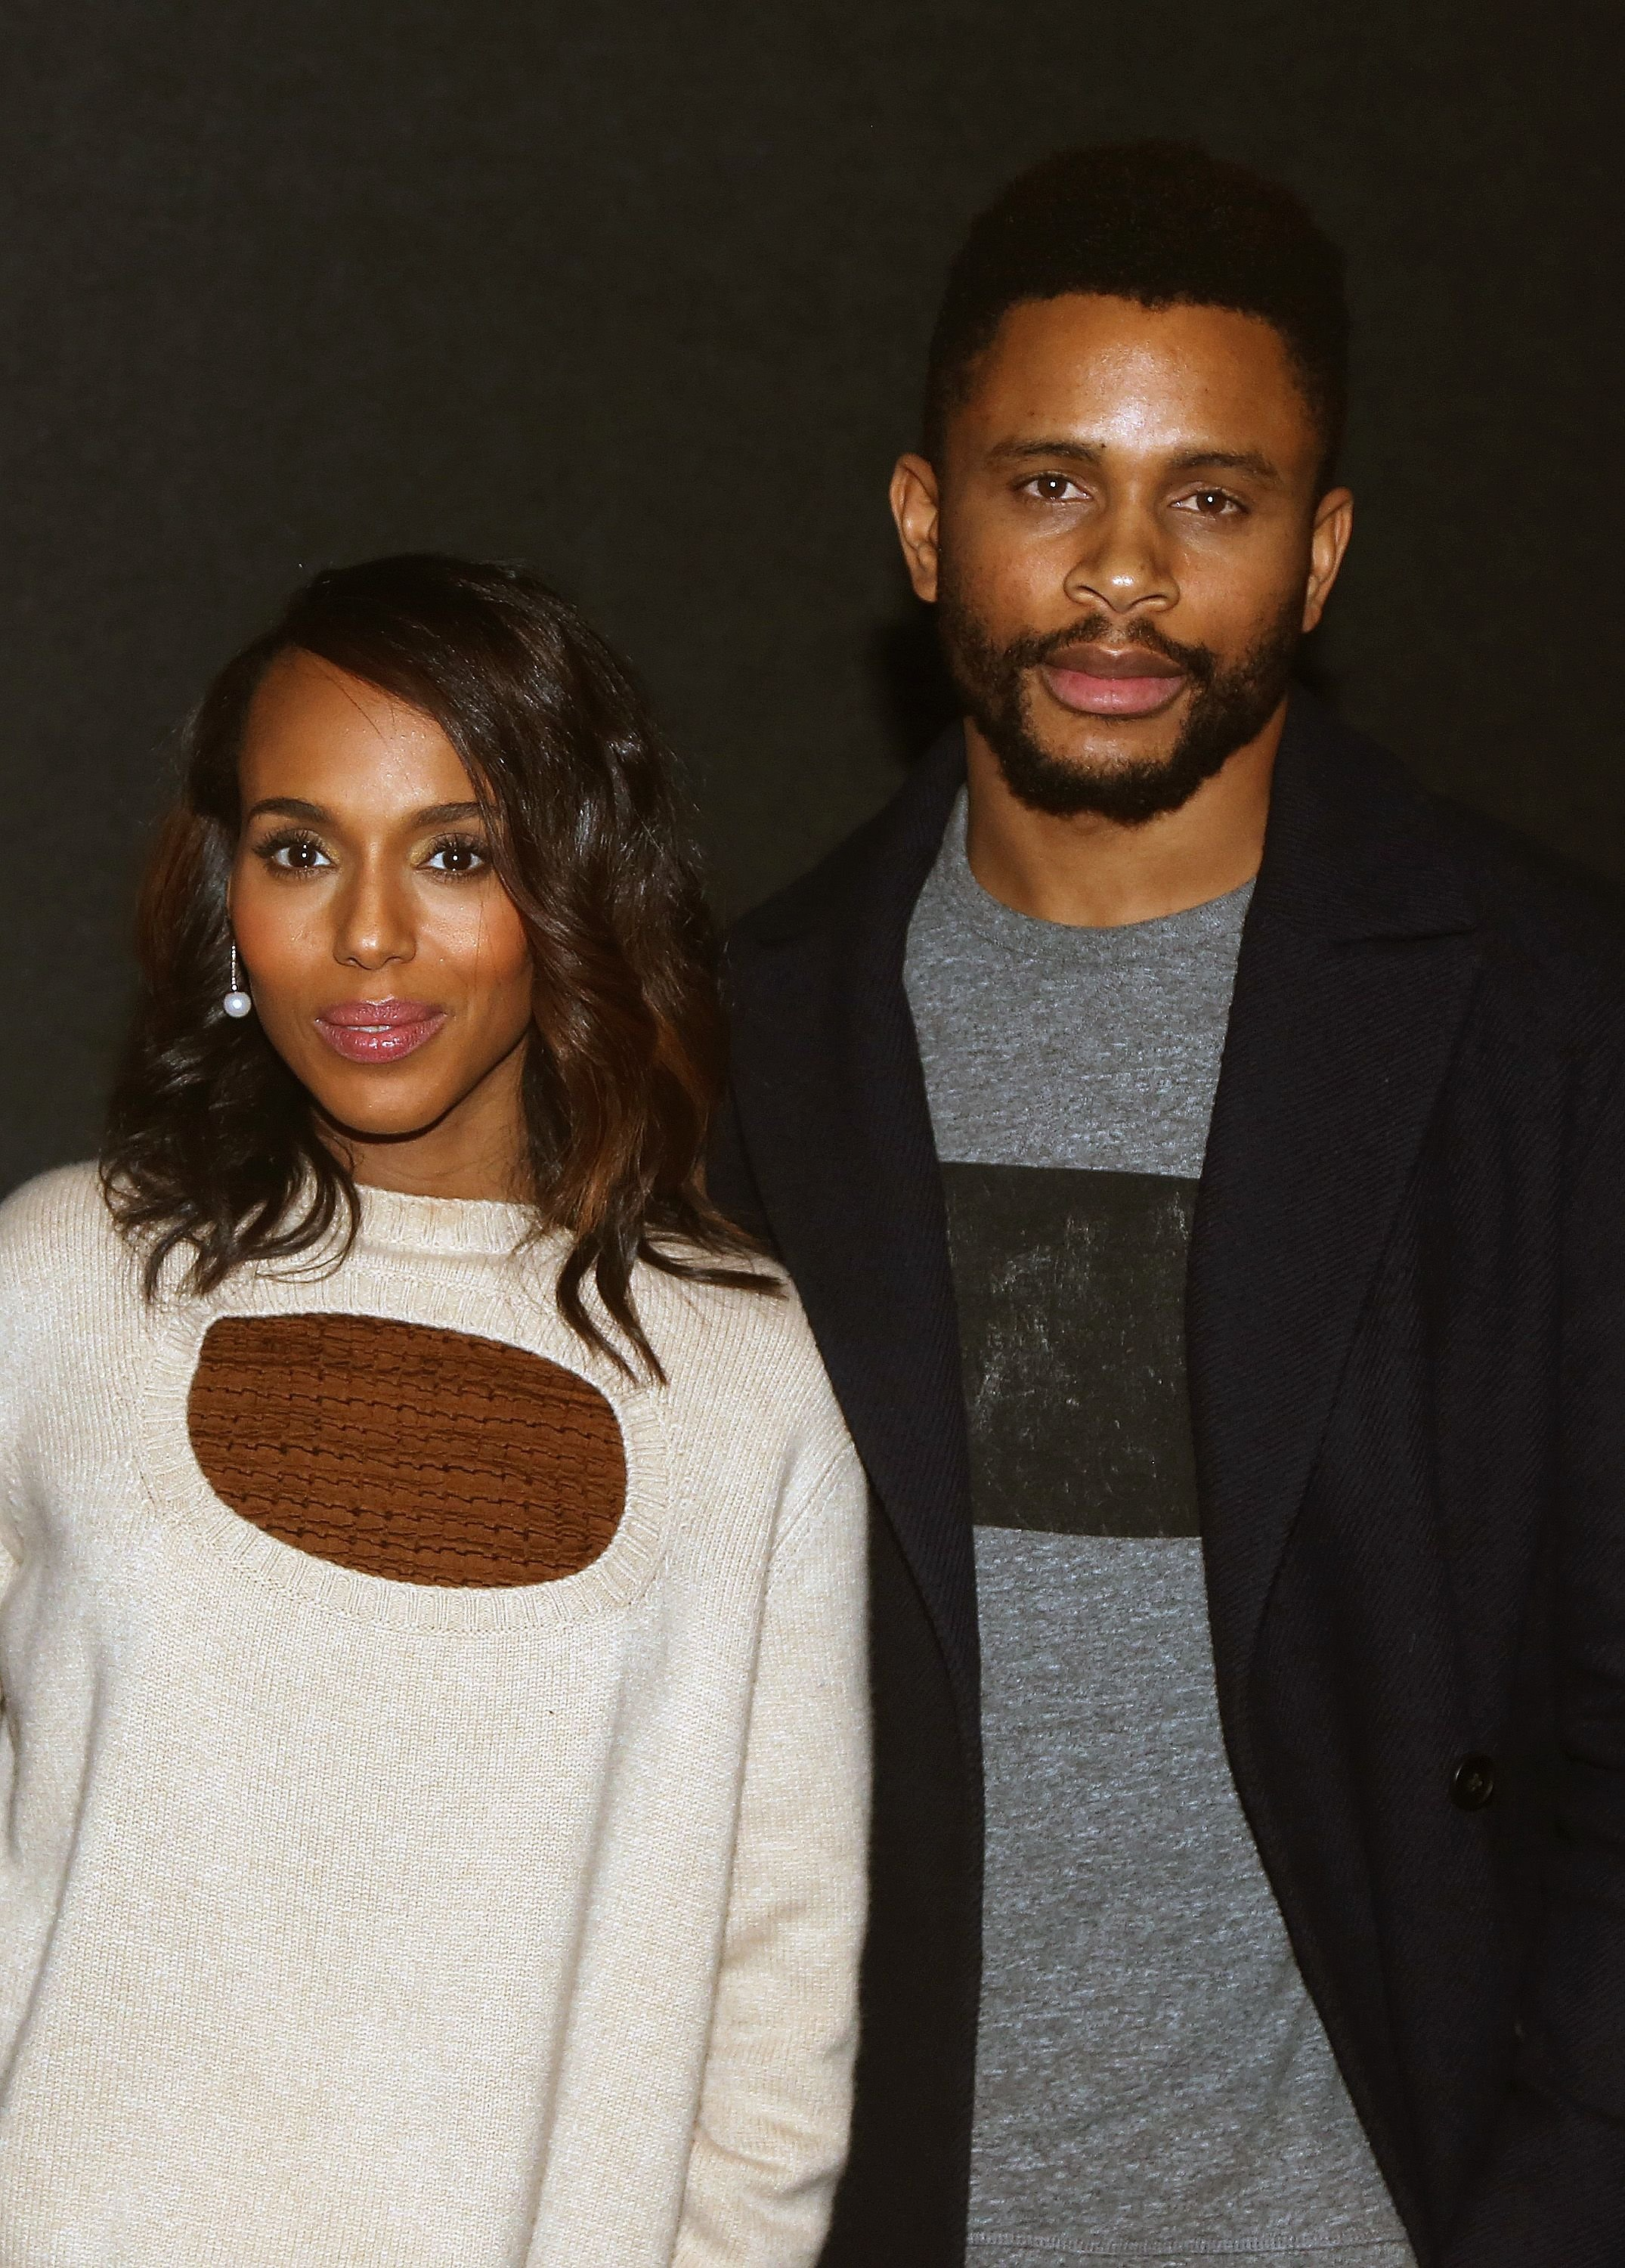 Kerry Washington S Husband Nnamdi Asomugha Is Also An Actor Inside Their Love Story